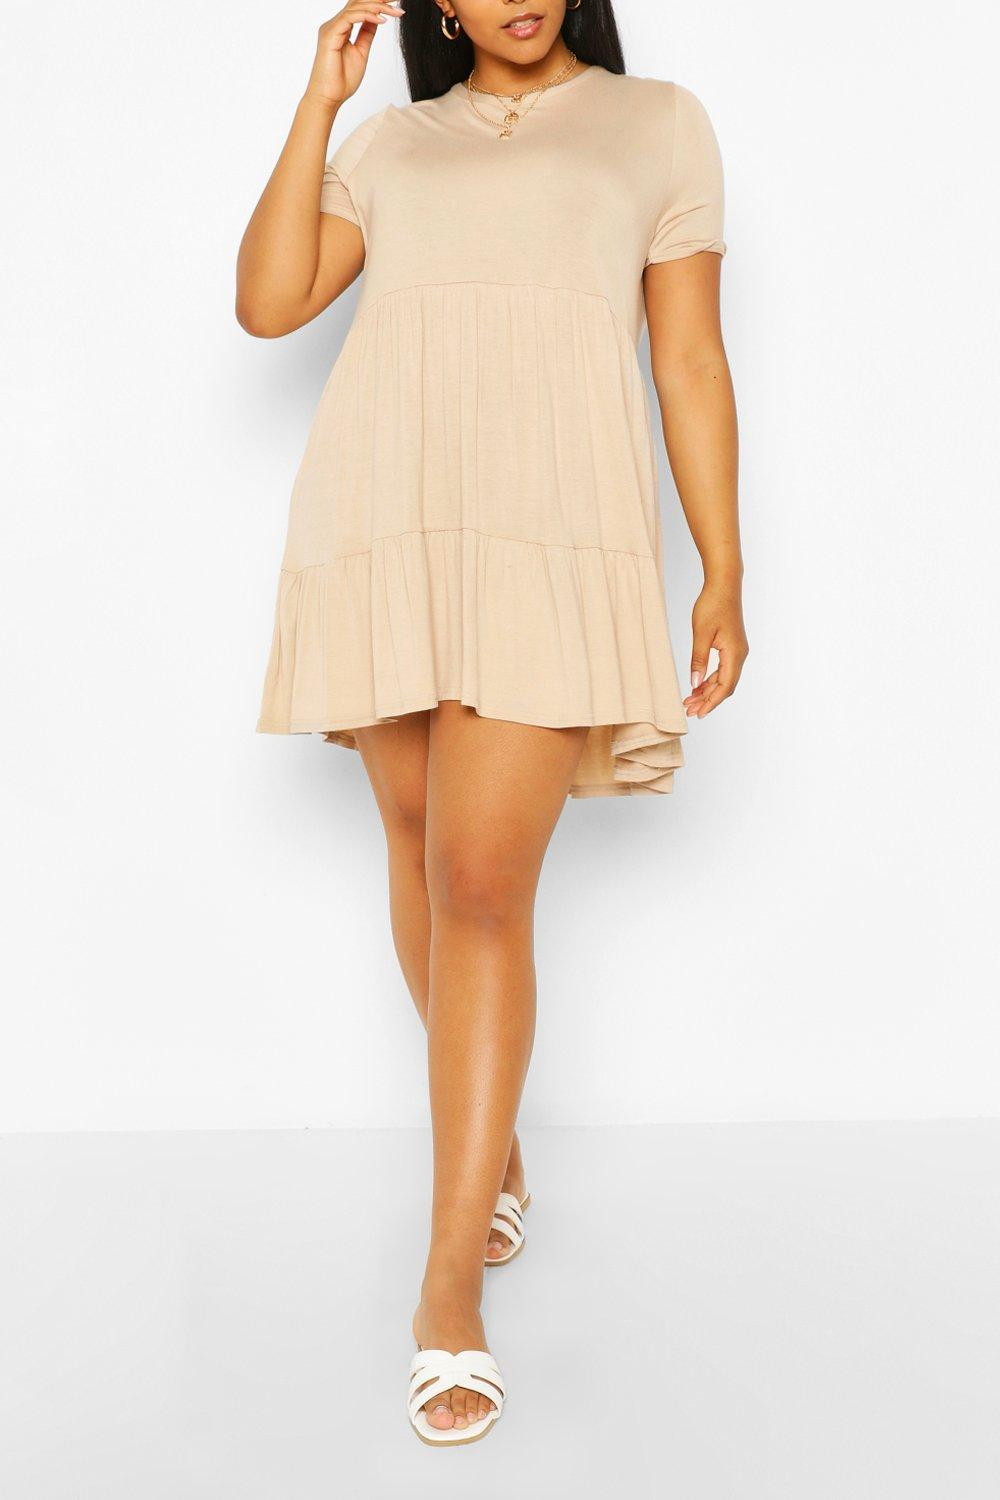 Simply Ageless Ruched Midi Dress - Nude 7